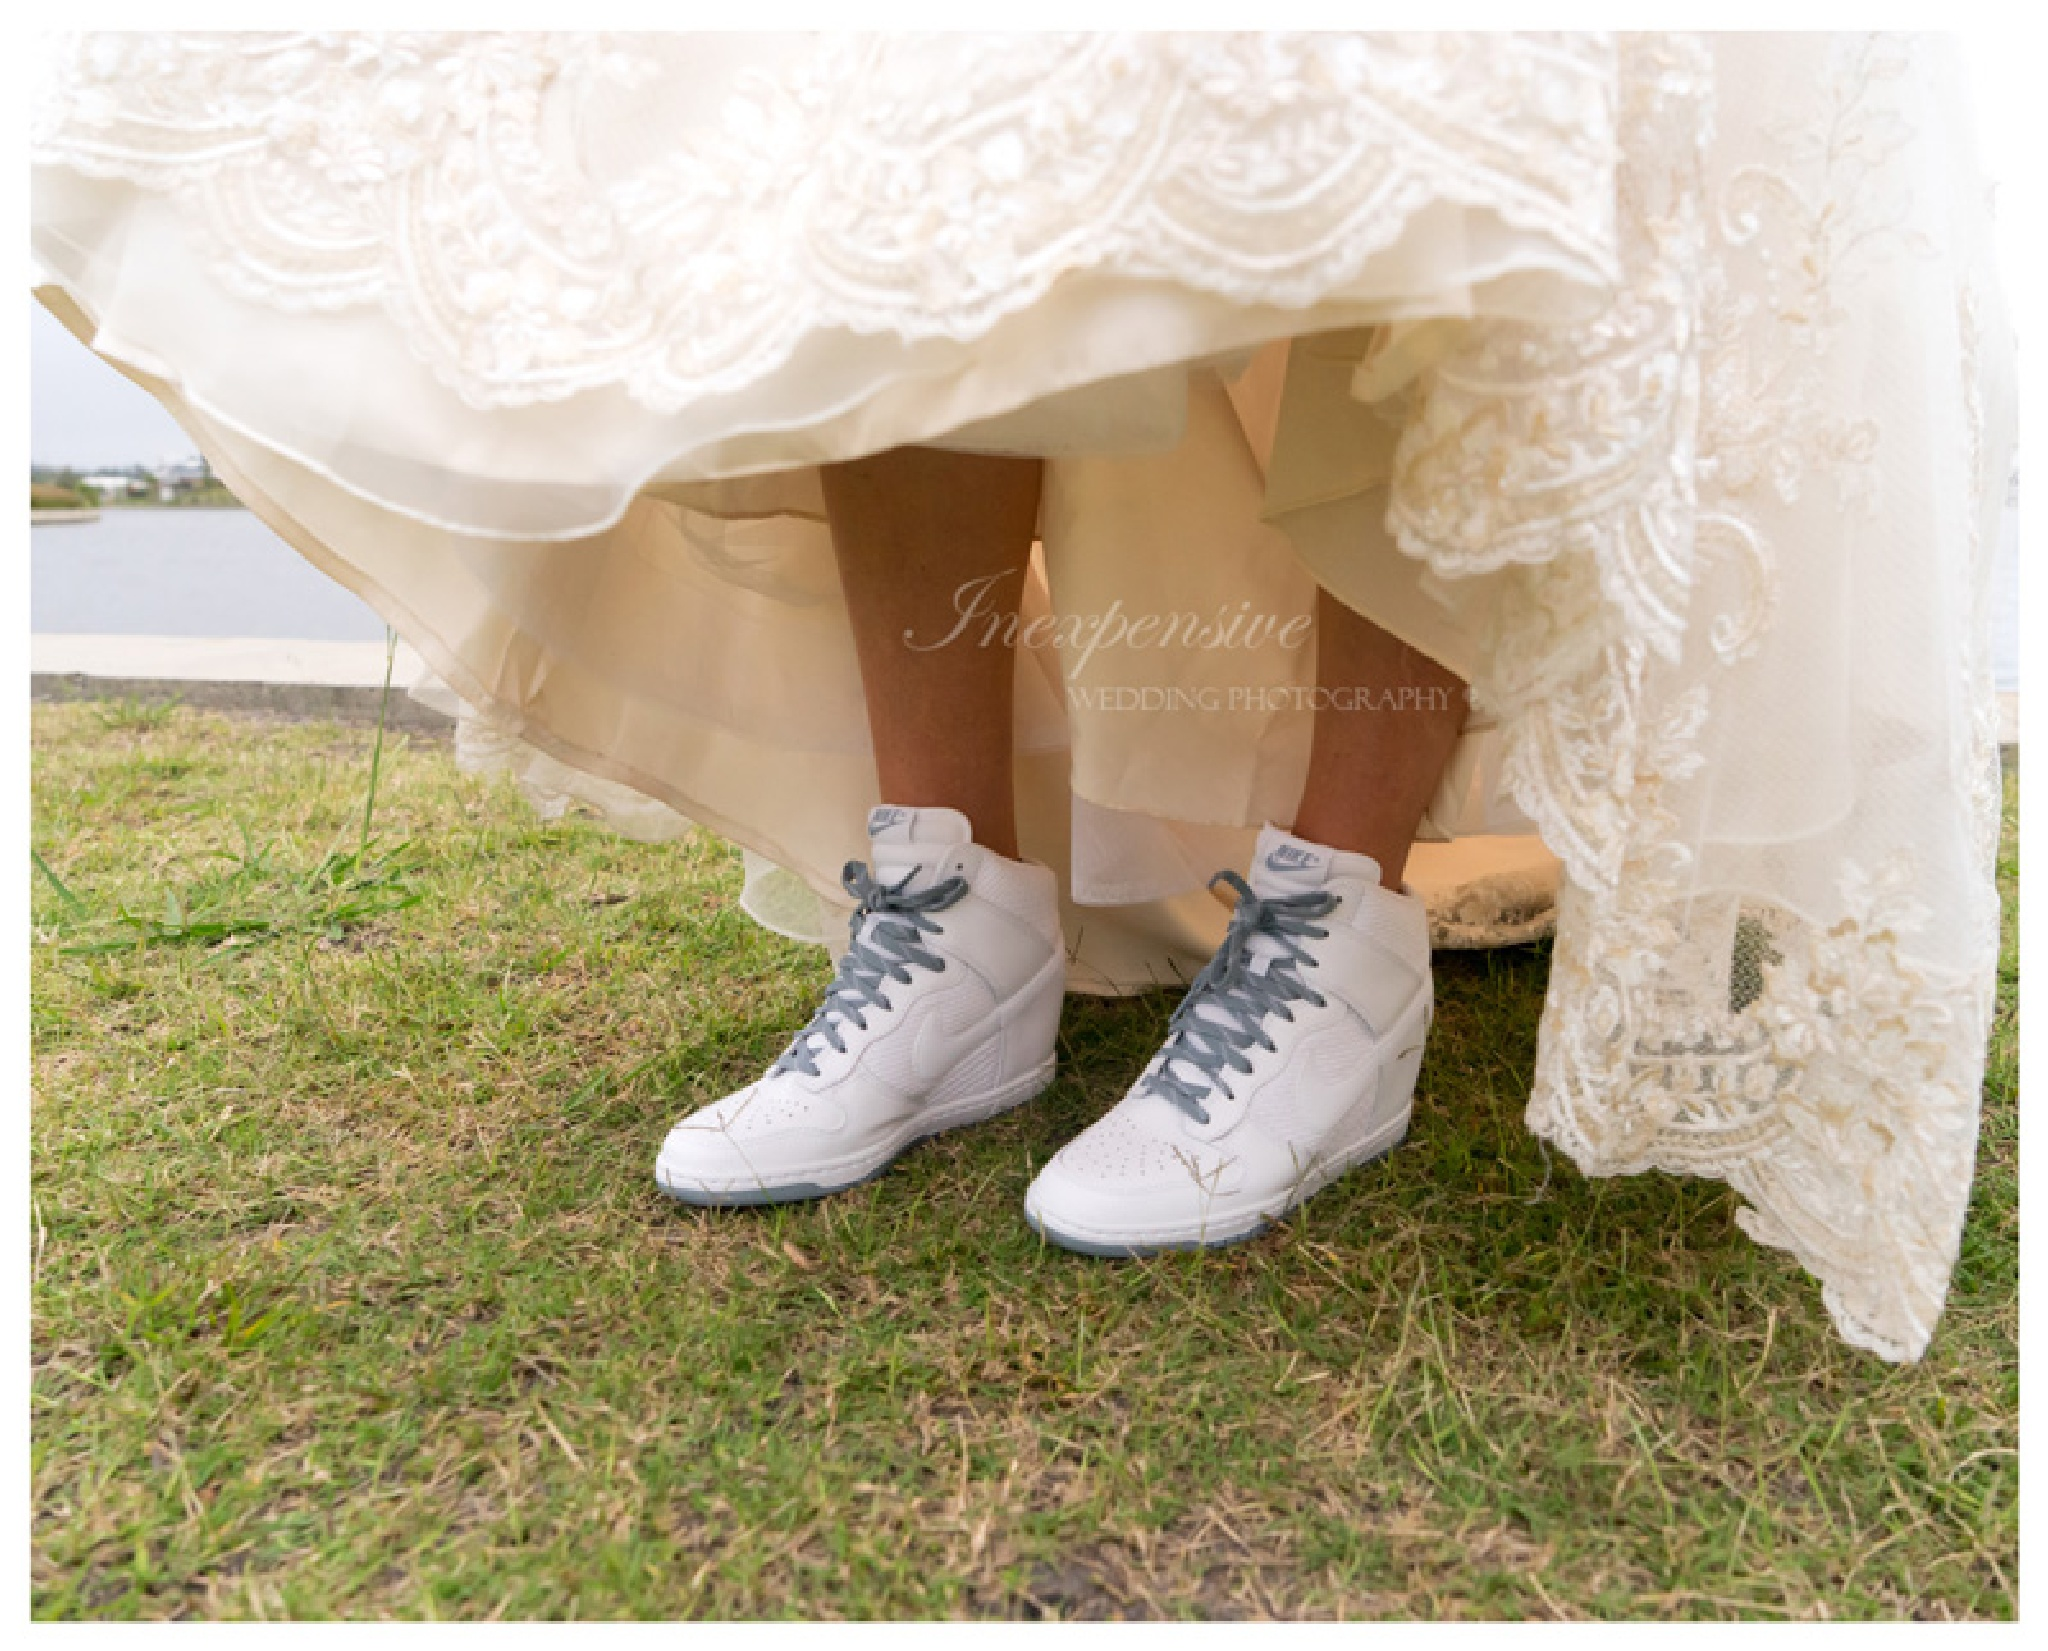 Nike Bride by Inexpensive Wedding Photography